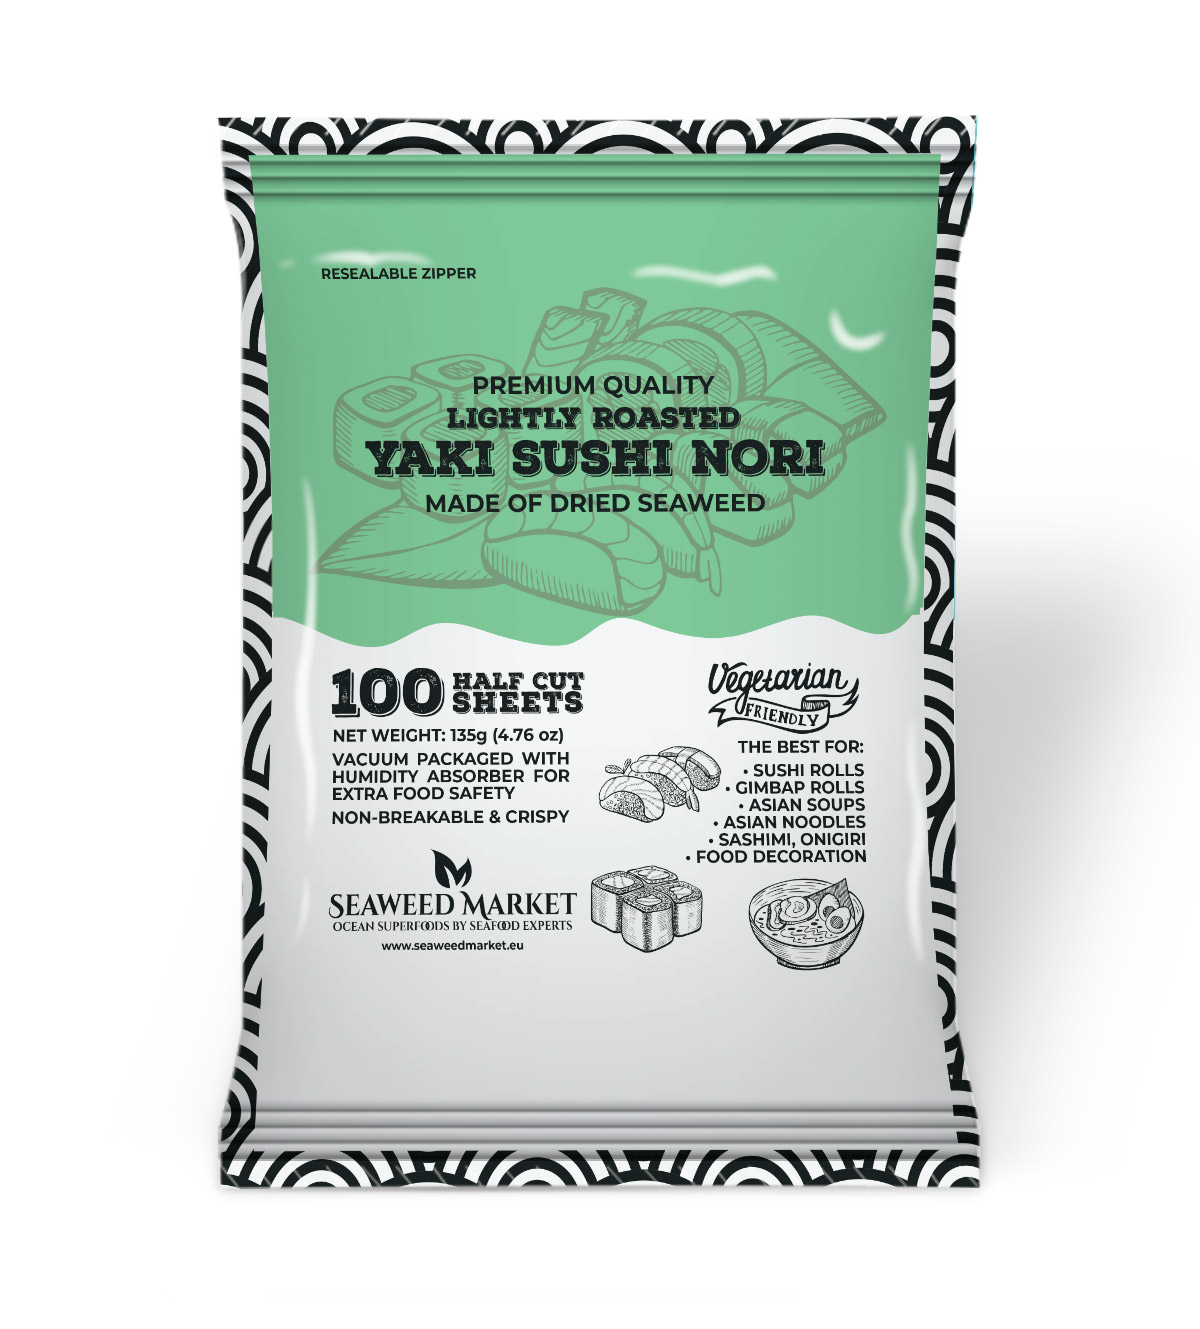 100 Half Sheets Nori Seaweed Market - European supplier